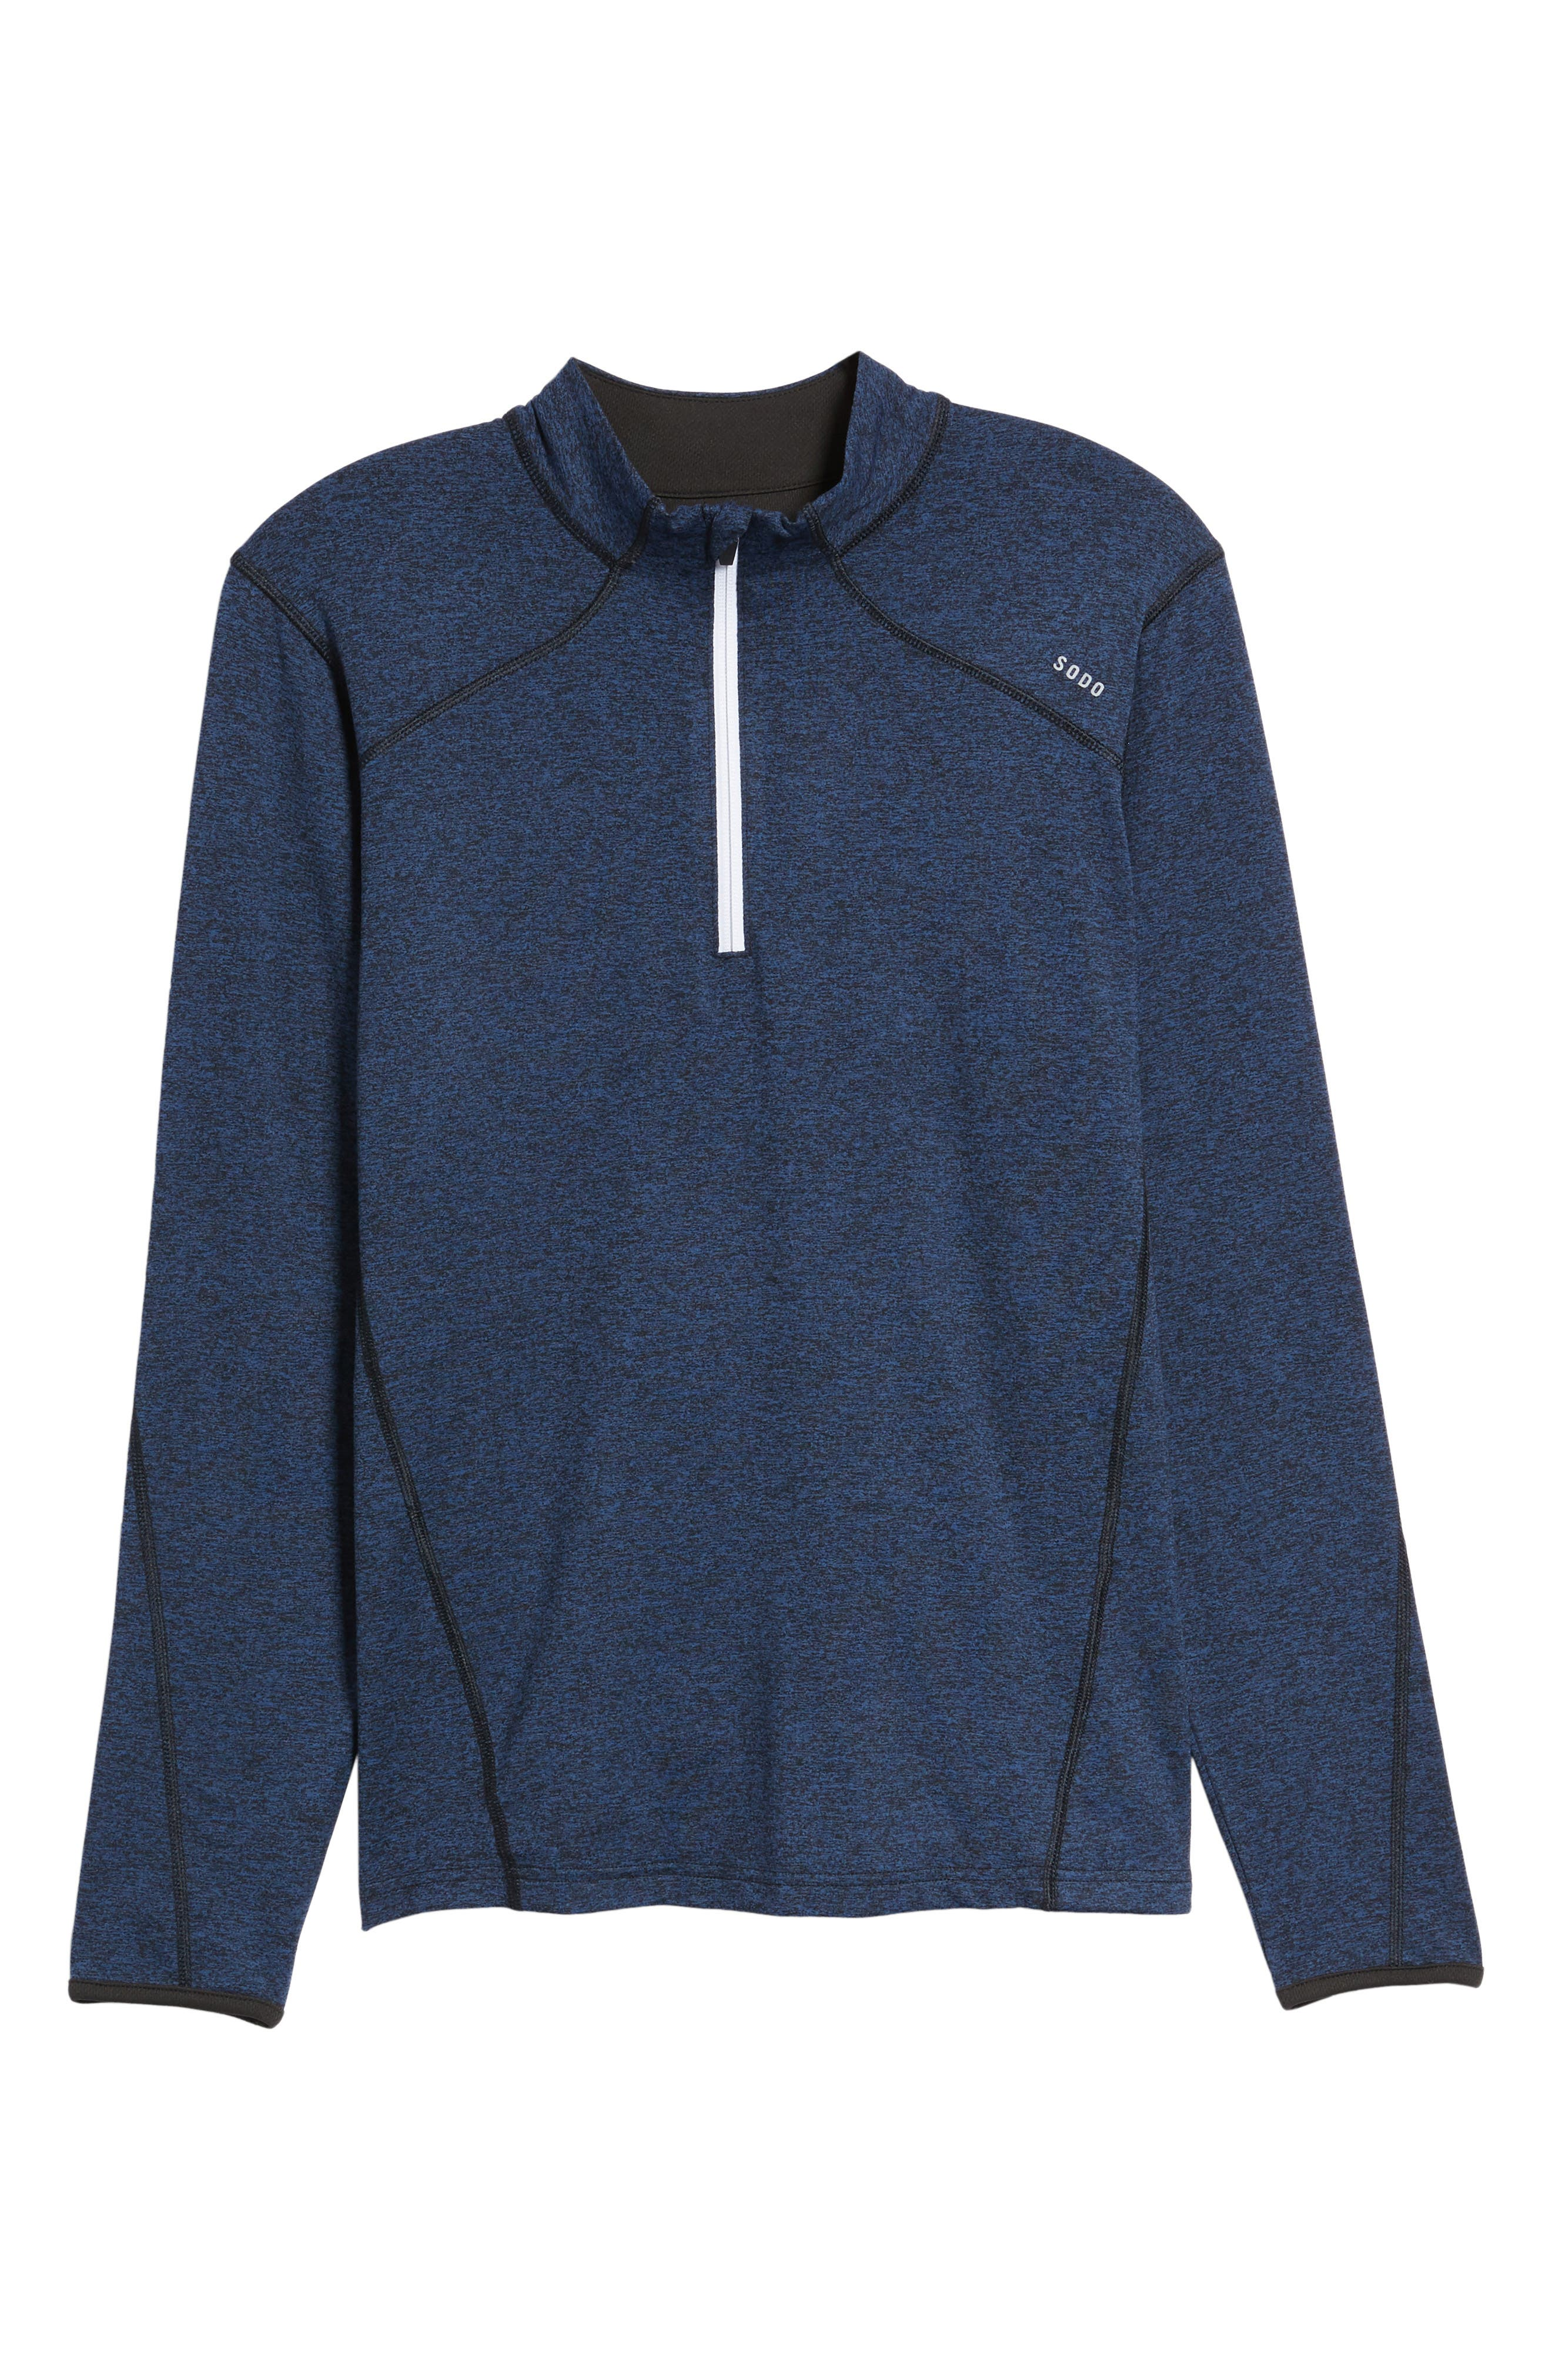 'Elevate' Moisture Wicking Stretch Quarter Zip Pullover,                             Main thumbnail 1, color,                             Navy Black/ Black/ White